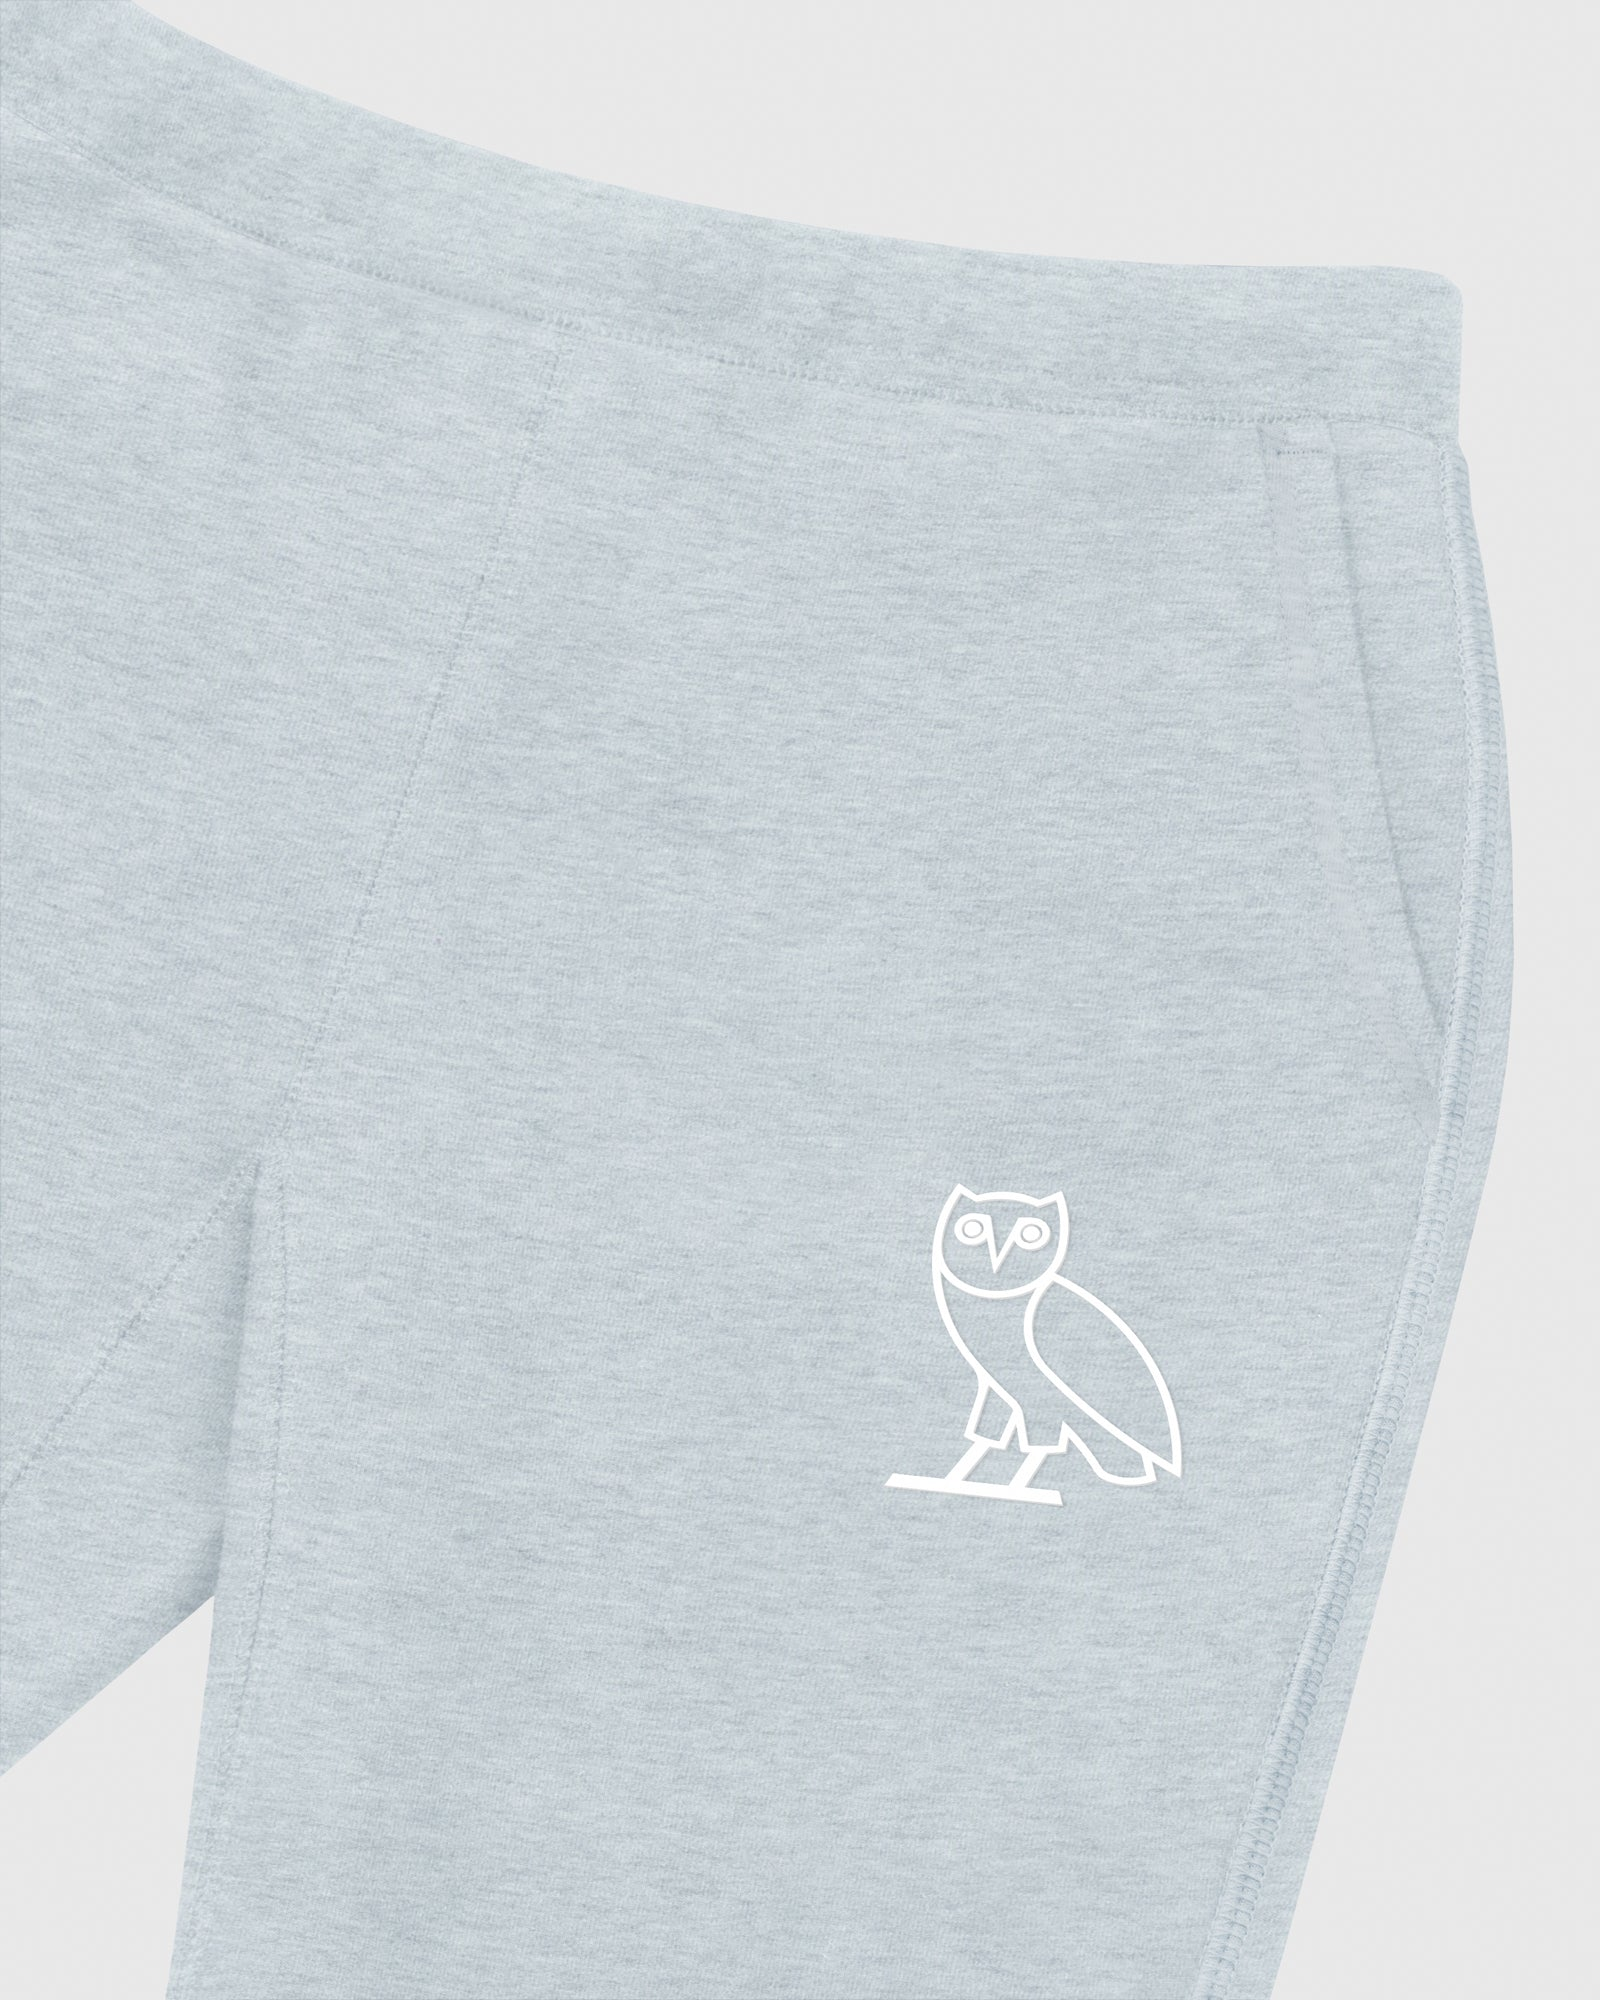 DOUBLE KNIT SWEATPANT - HEATHER BLUE